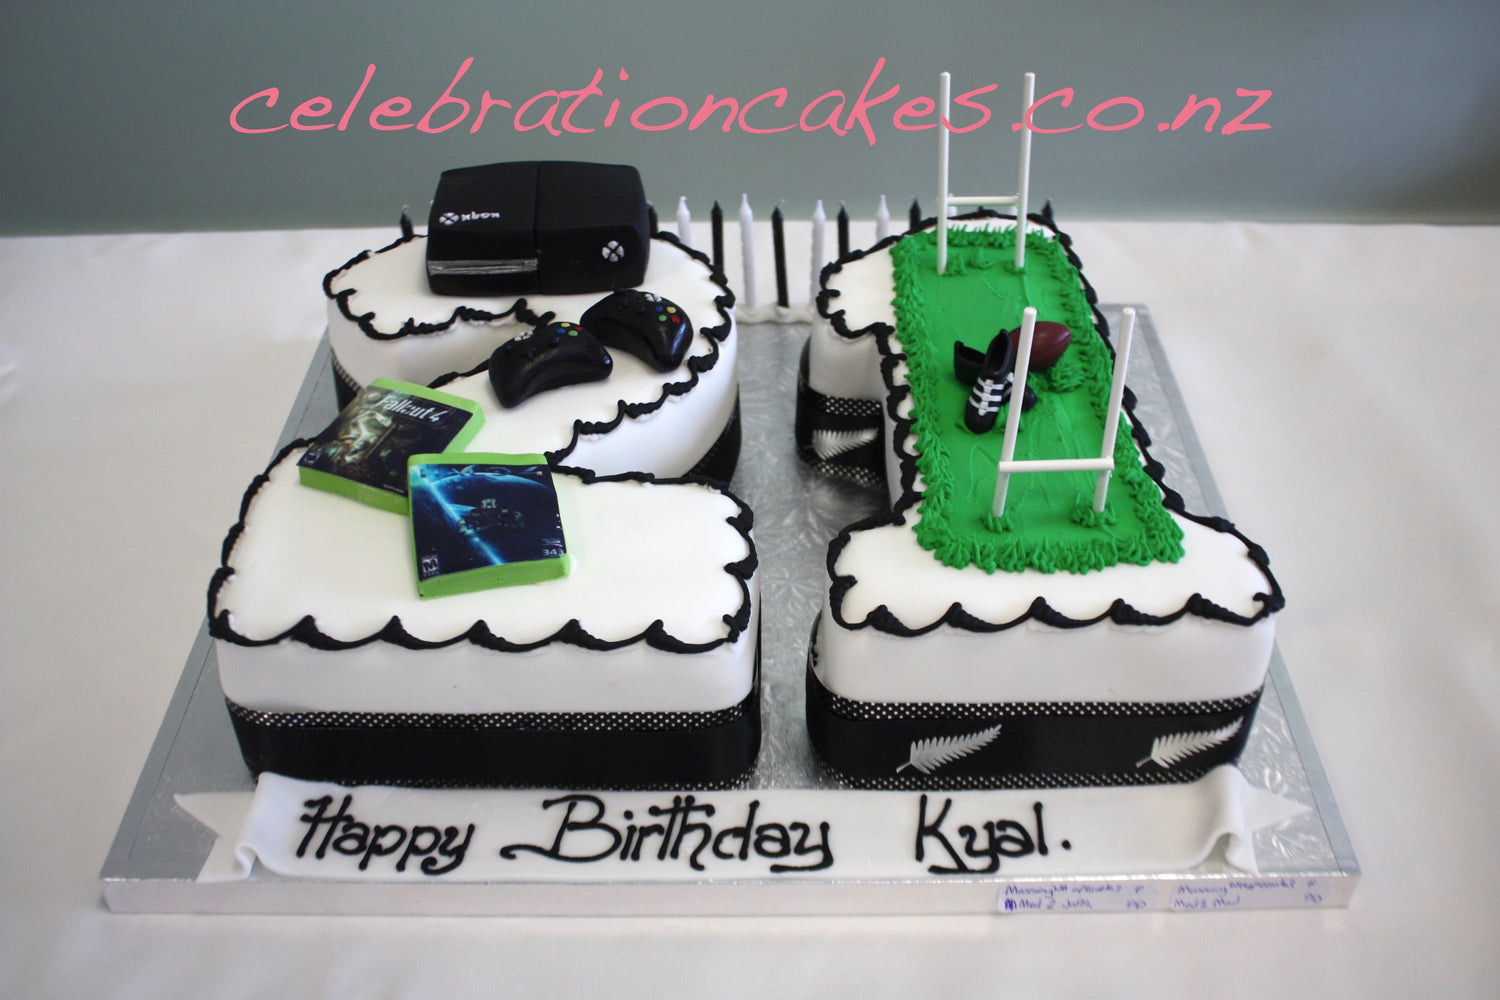 21 Figure Birthday Cakes: 21st Birthday Cakes, Celebration Cakes, Auckland